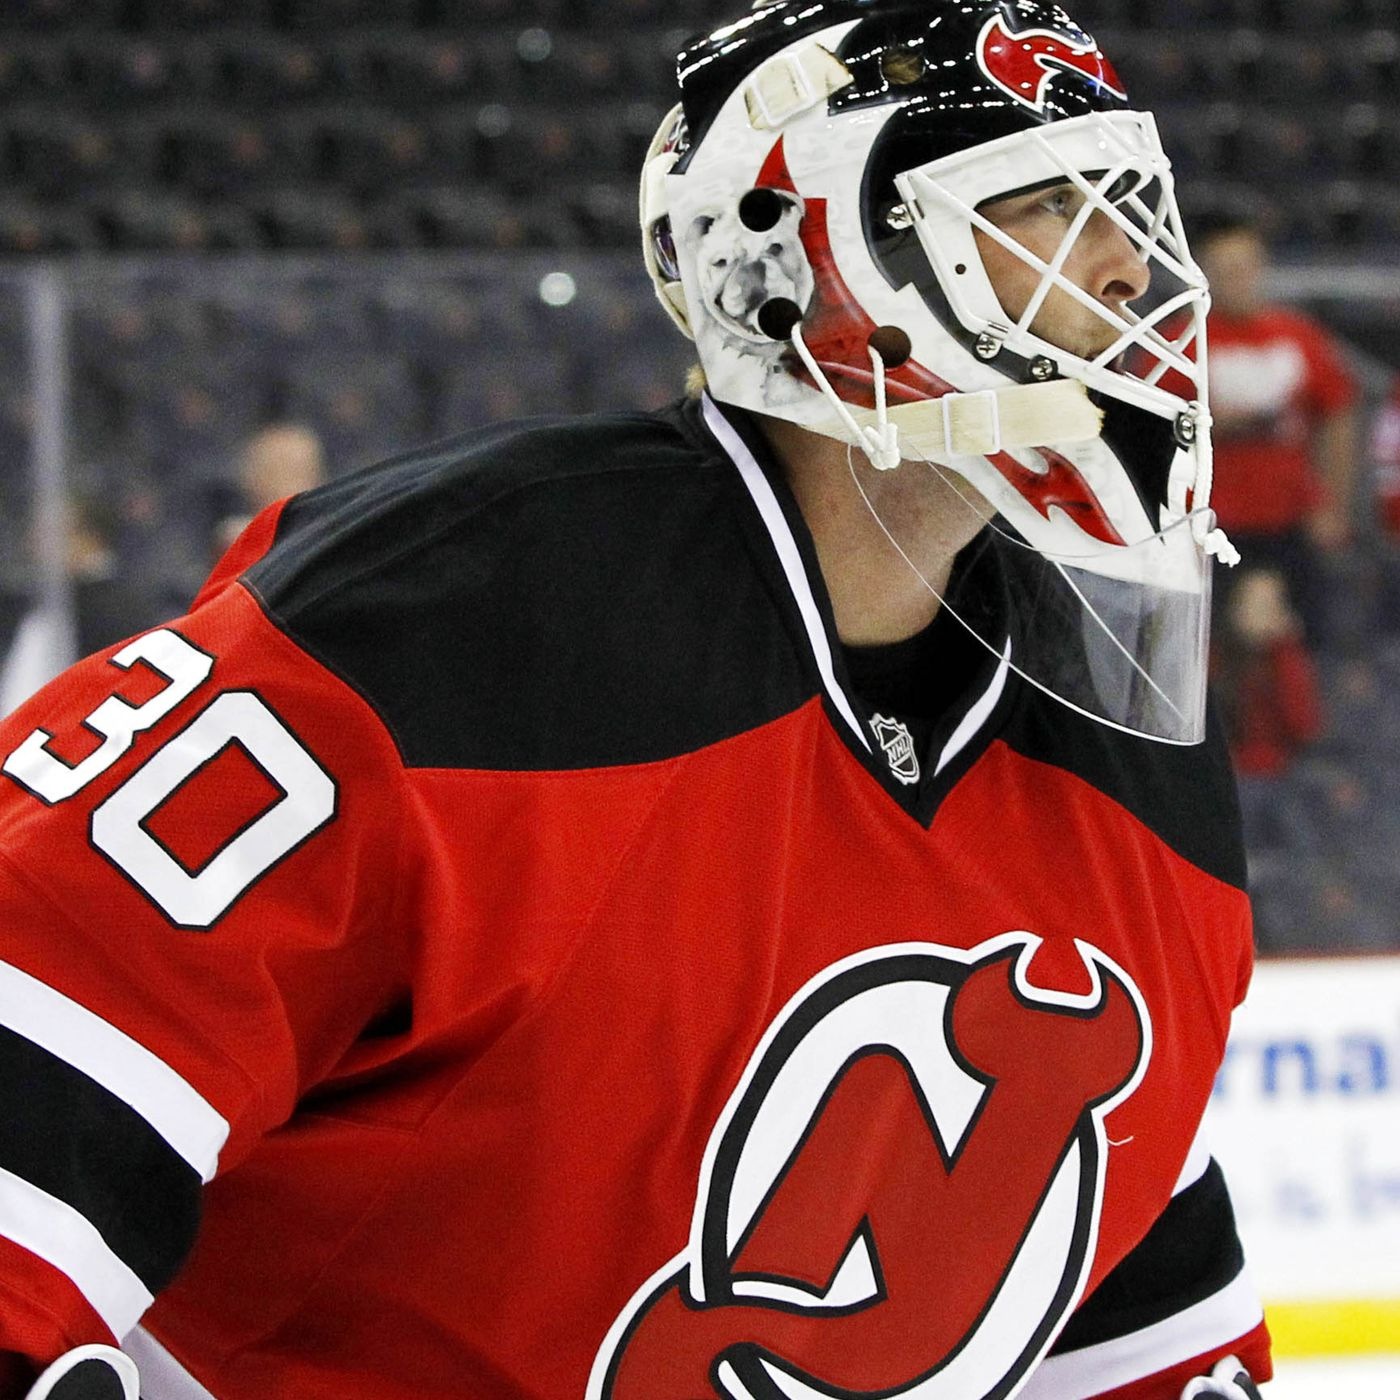 New Jersey Devils vs. New York Islanders  Game 2 Preview - All About ... 2e0f7a9a1